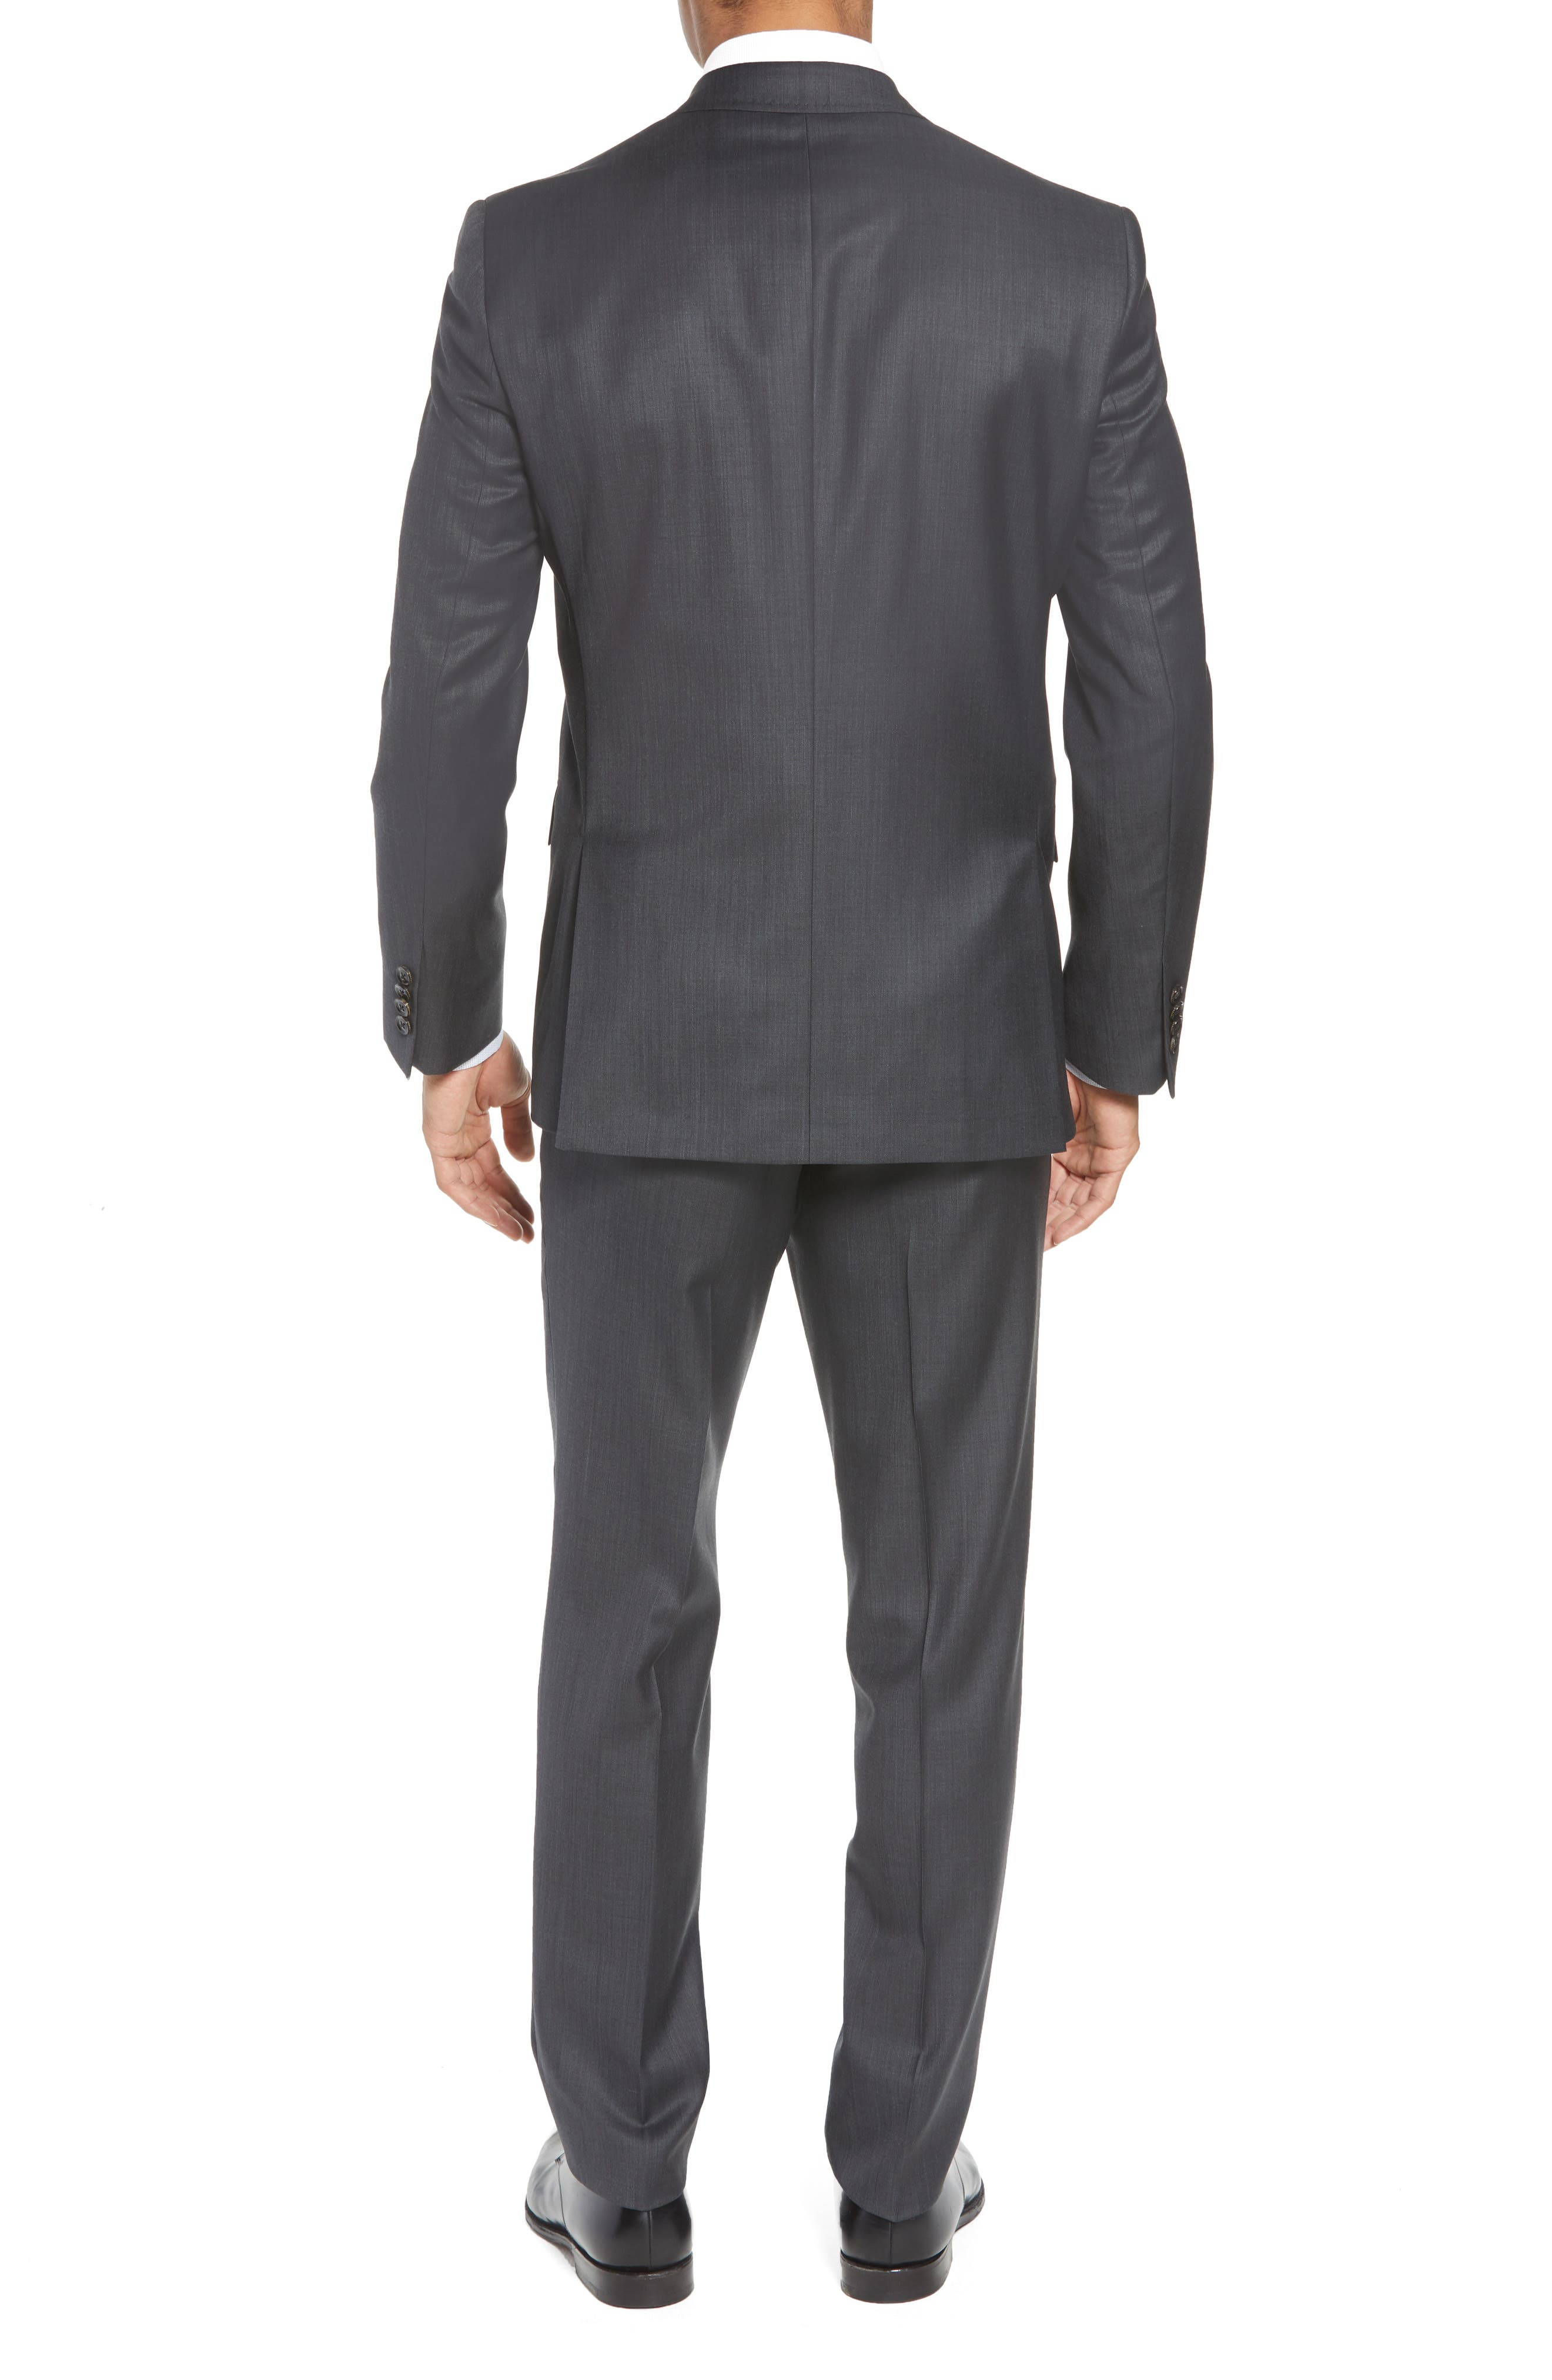 TED BAKER LONDON, Jay Trim Fit Solid Wool Suit, Alternate thumbnail 2, color, CHARCOAL